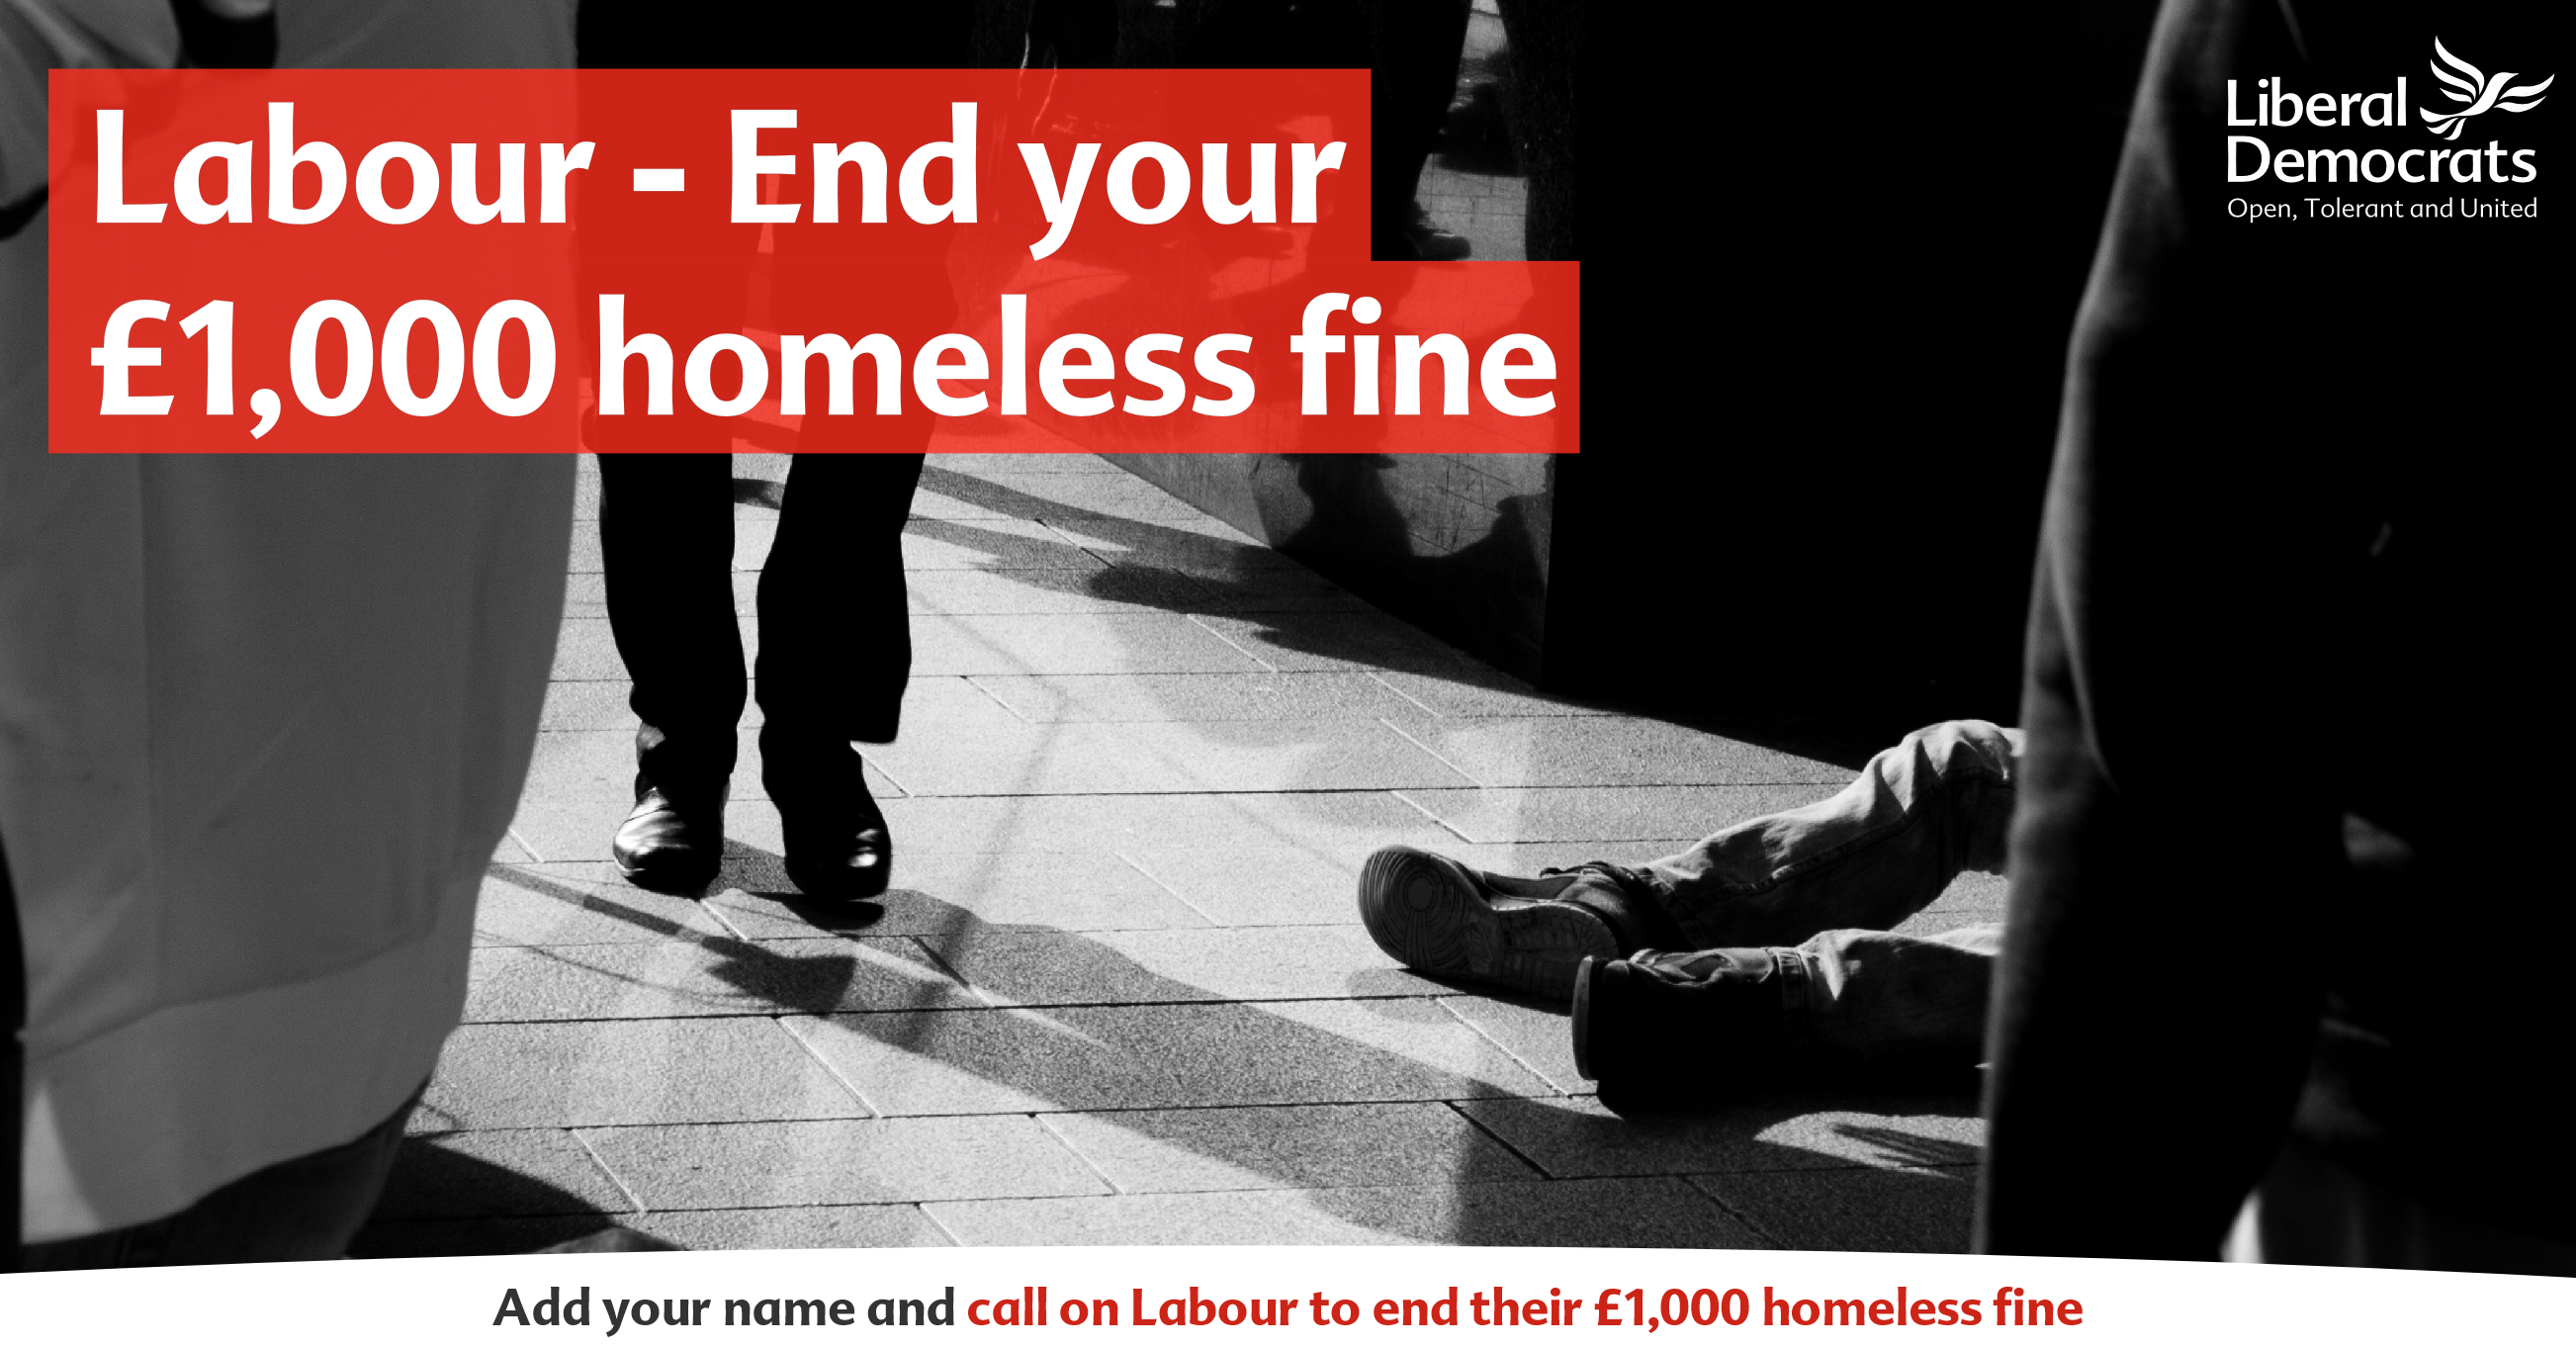 Scrap the £1k Homeless Fine